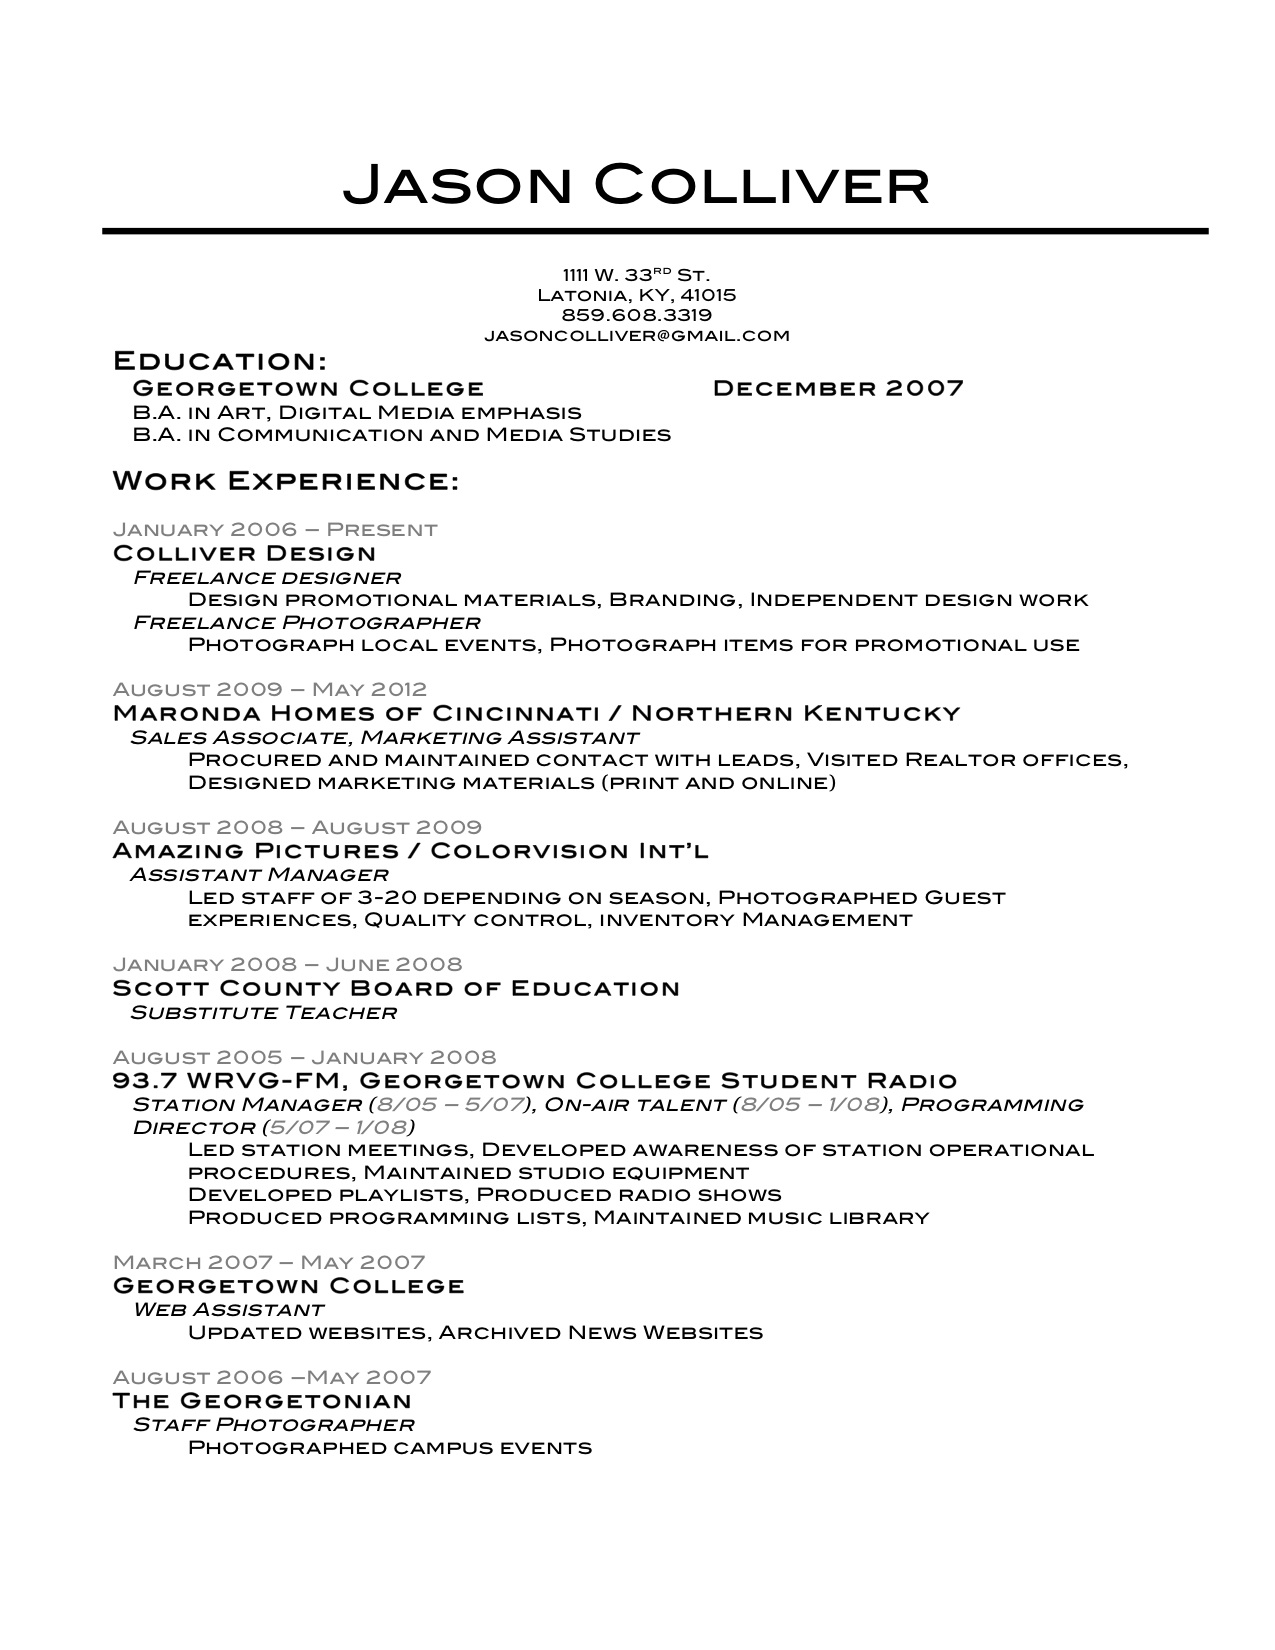 examples medical assistant resume cover letter resume medical assistant with gallery resume medical assistant cover letter - Best Cover Letters For Resume